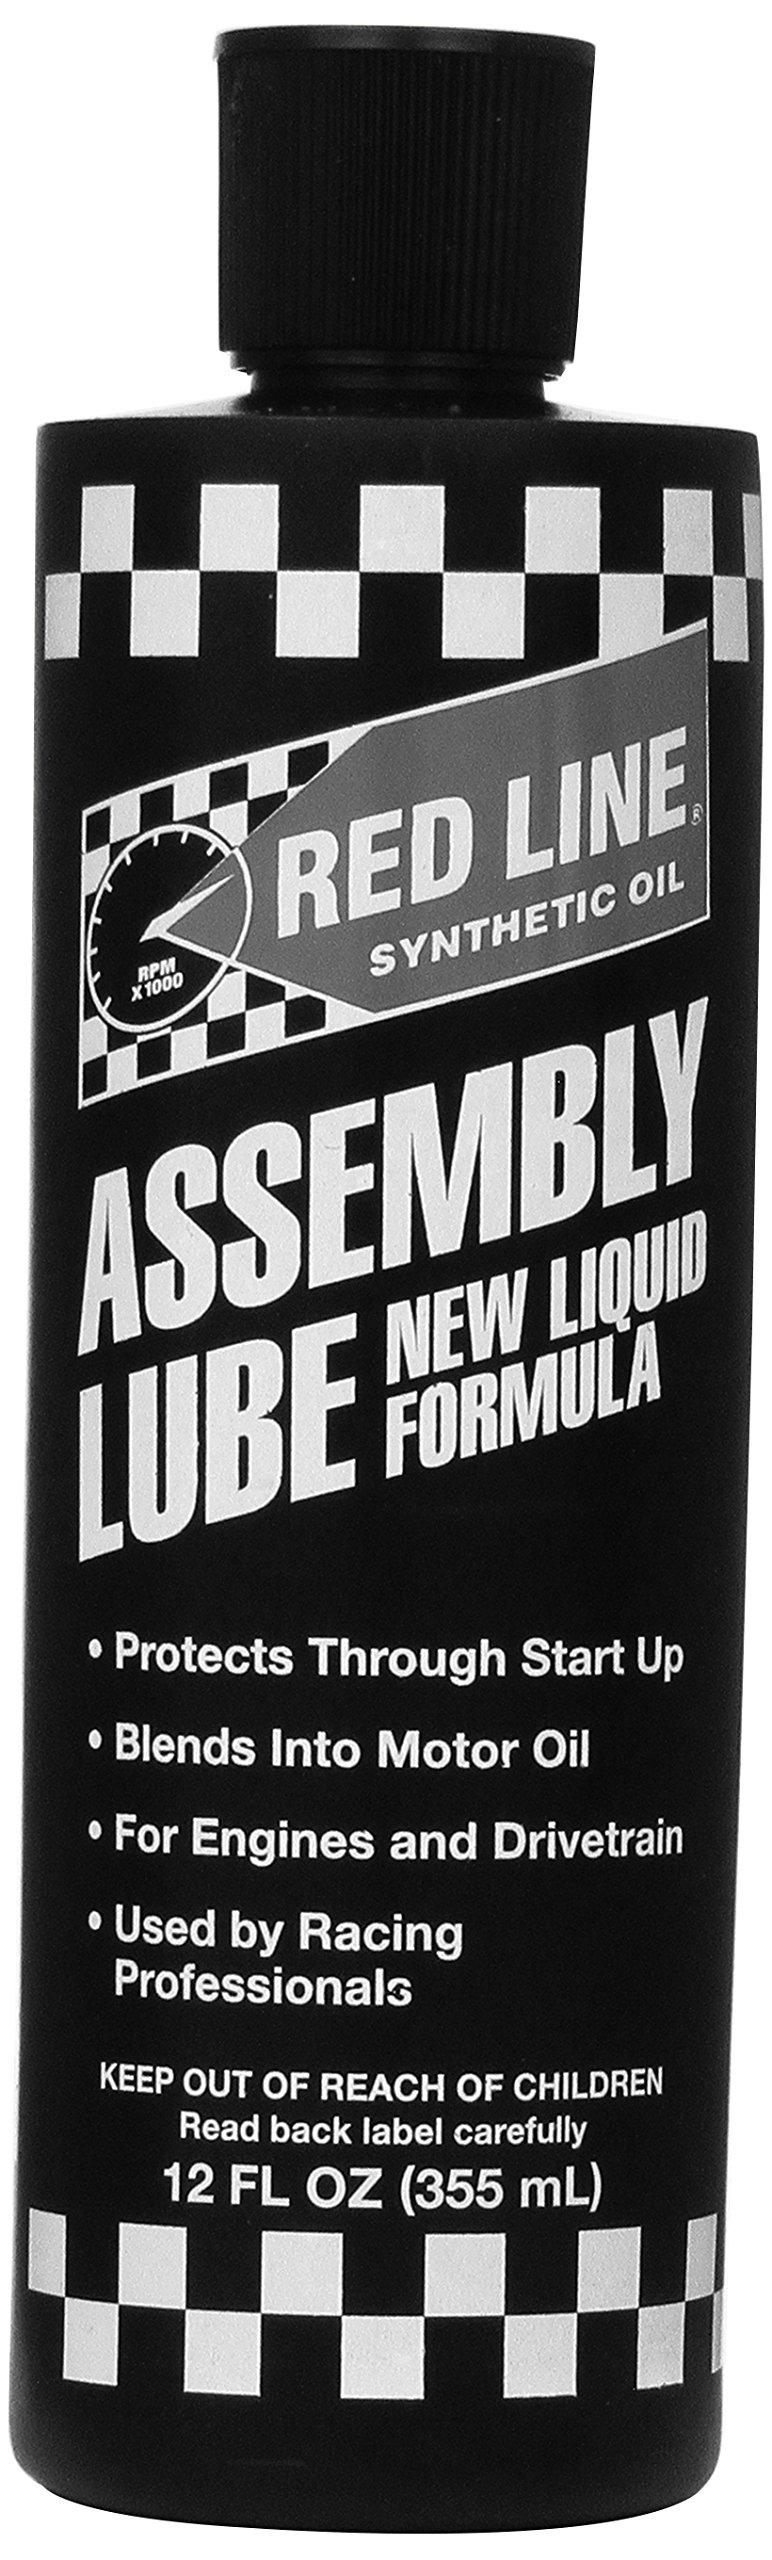 Red Line 80329 Liquid Assembly Lube - 12 oz., (Case of 6) by Red Line